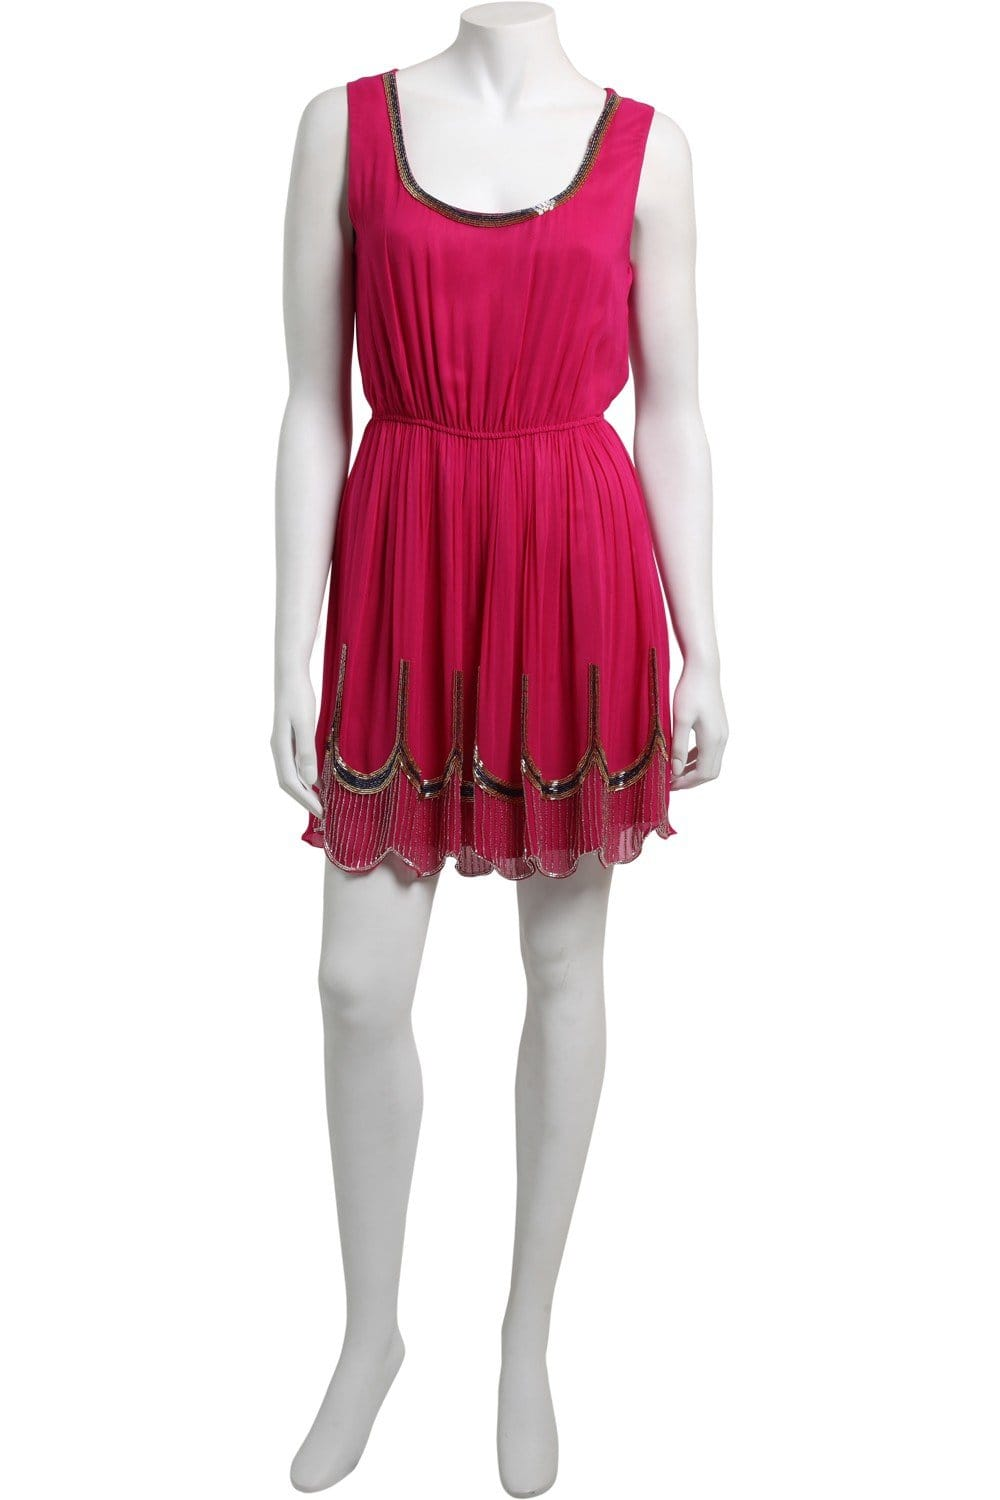 by pope fuchsia scallop beaded dress